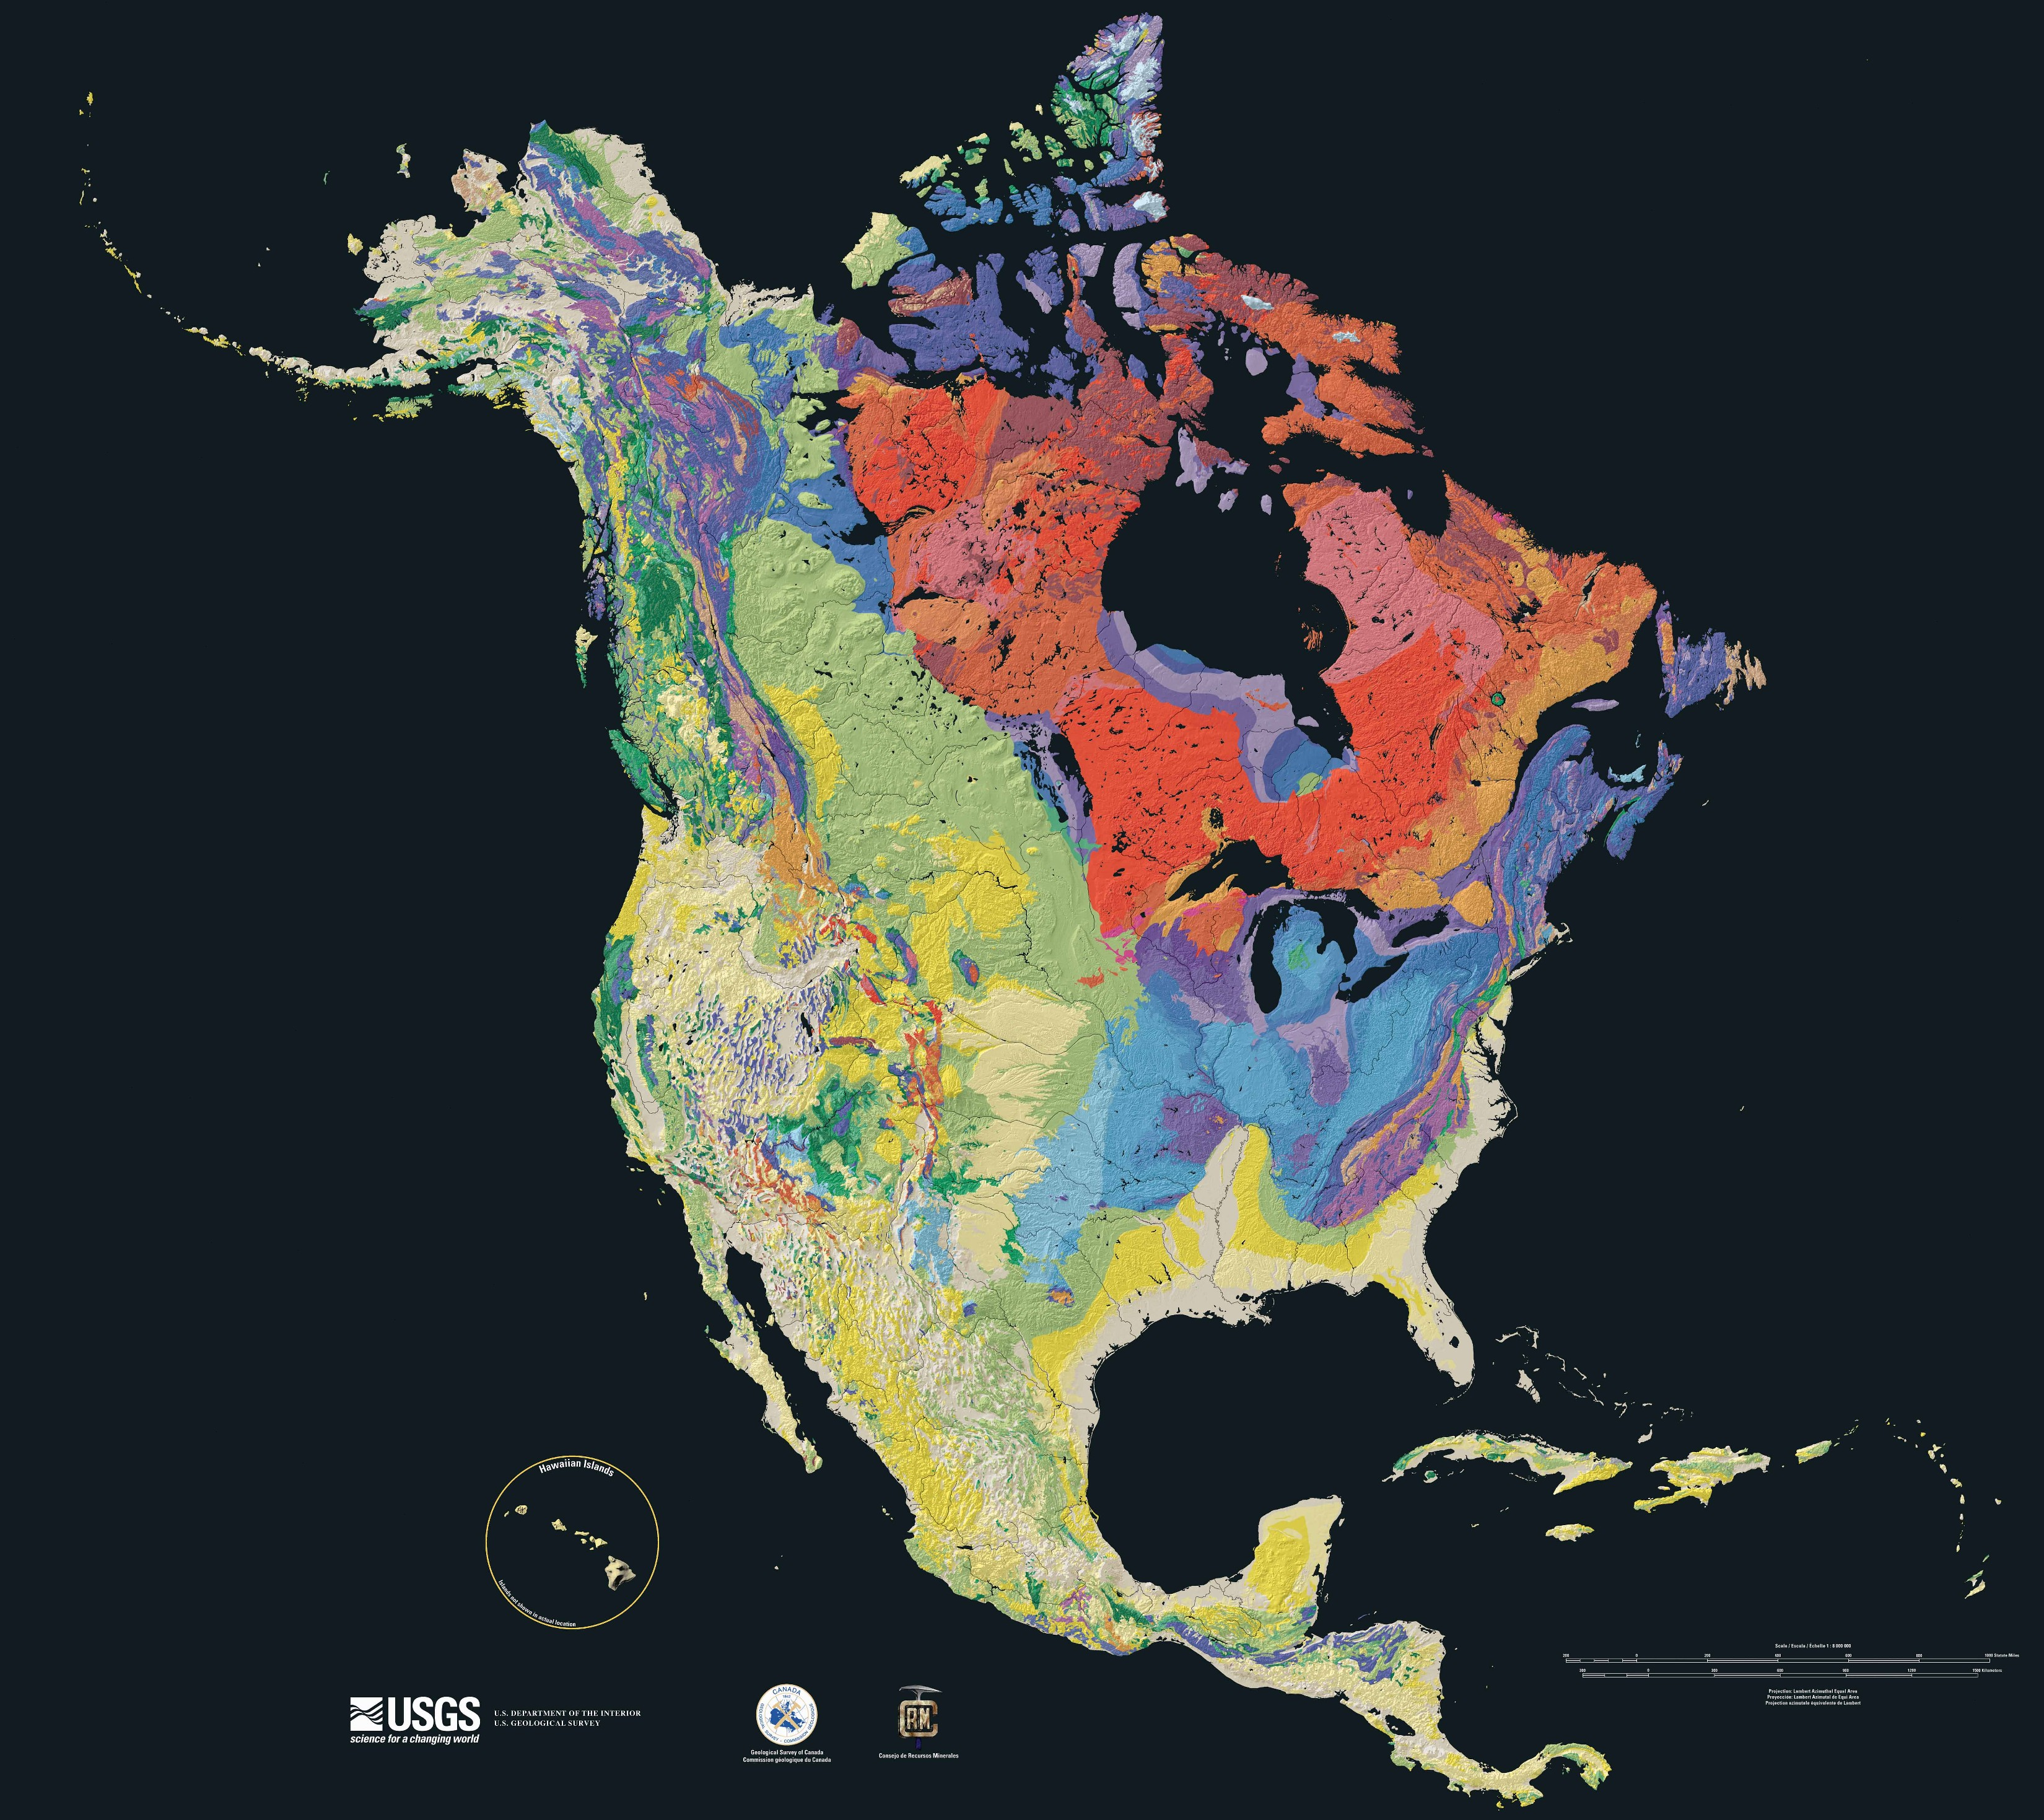 Index Of LibraryImagesSlideshowsGalleryMaps - Colorful map of watersheds in us